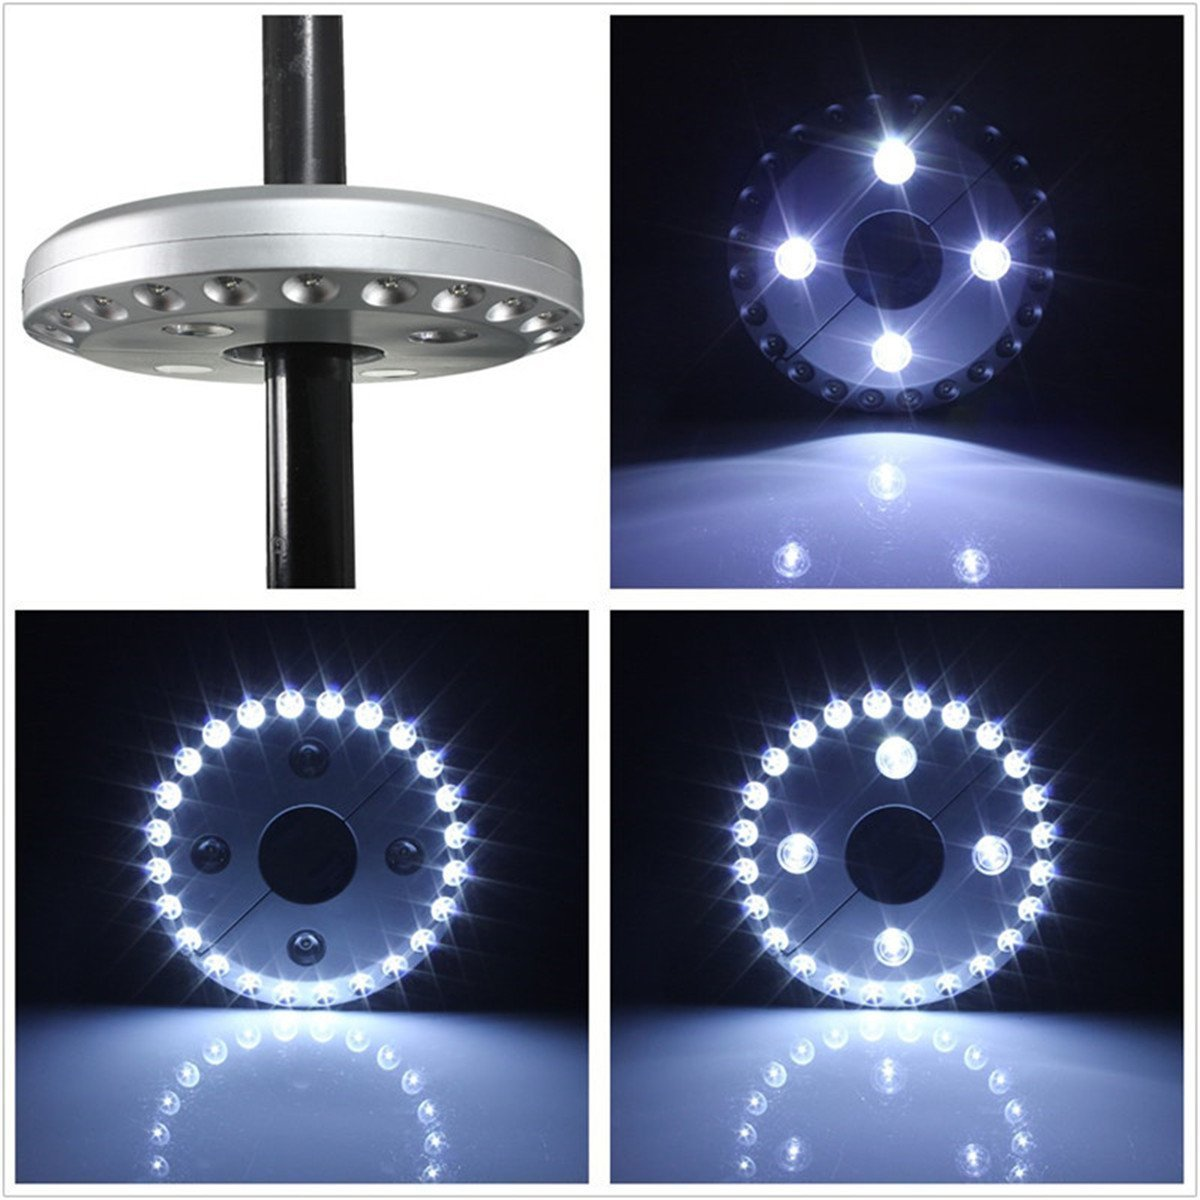 LSHCX Battery Powered 3 Level Dimming Patio Umbrella Light Wireless 28 LED Lights Umbrella Pole Light for Patio Umbrellas, or Camping Tents by LSHCX (Image #3)